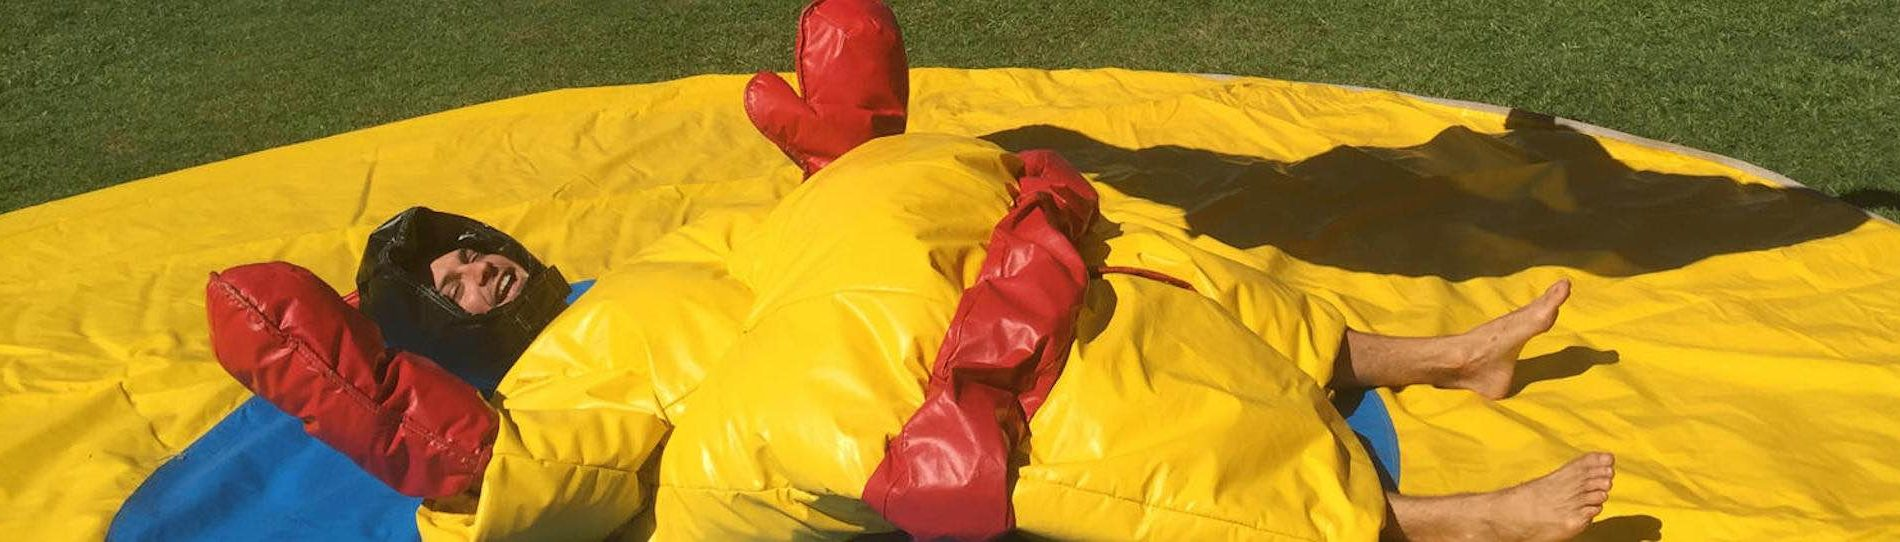 bucks sumo suit activity